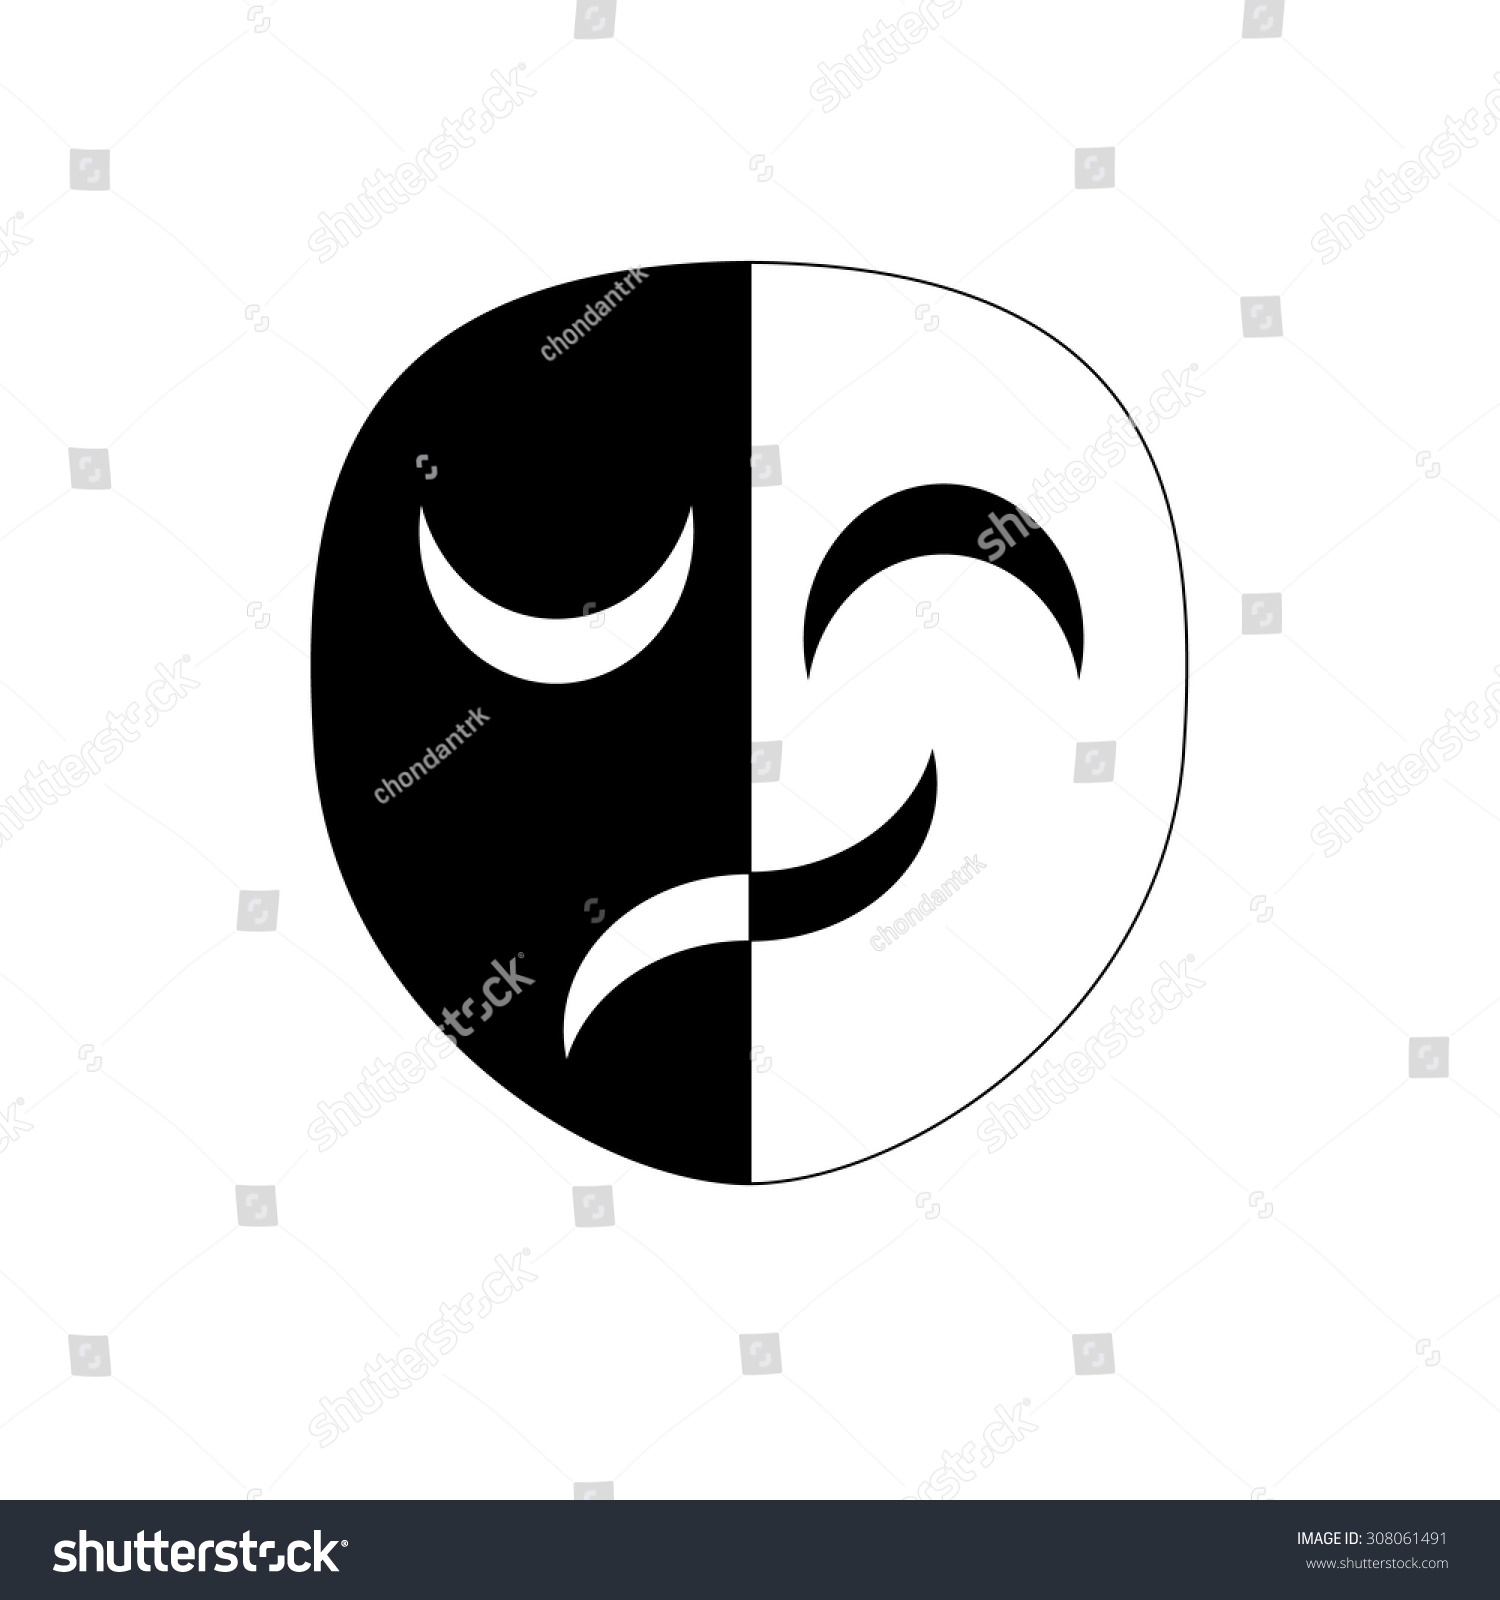 Masks Different Emotions Symbol Stock Vector Royalty Free